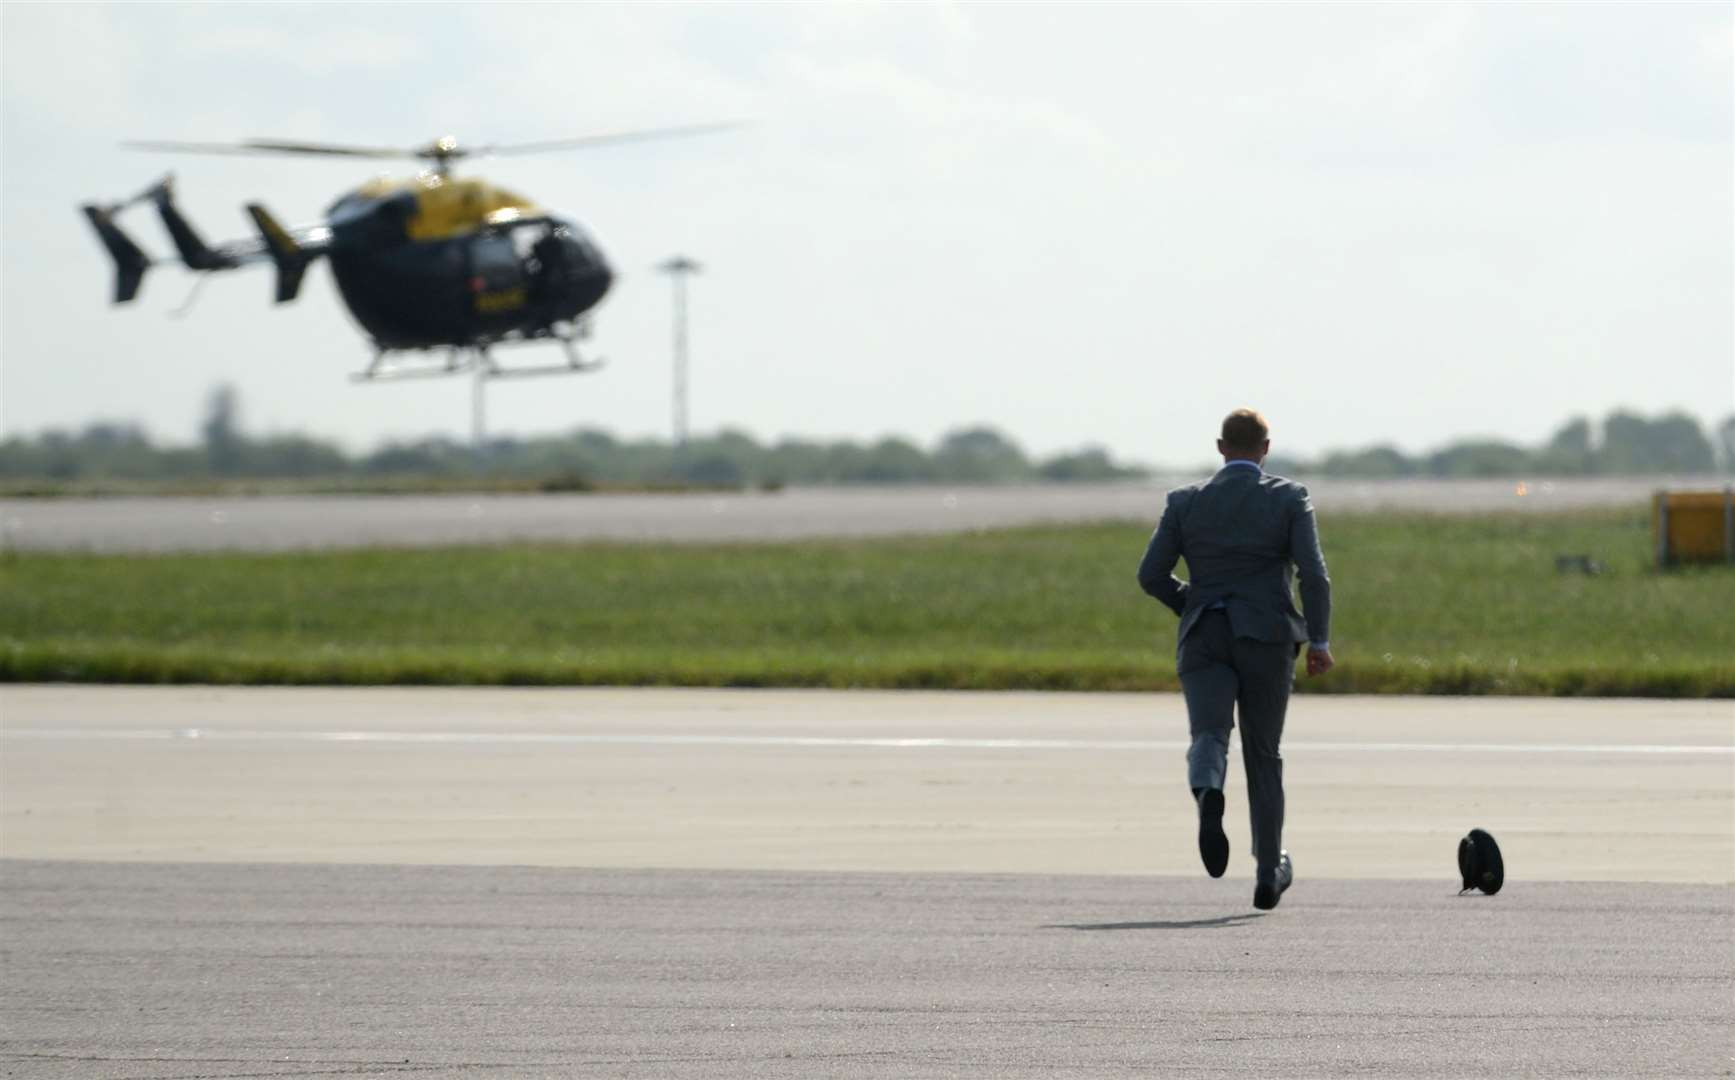 A member of the security detail chases after an RAF cap after the wind blew it off. Picture: Vikki Lince